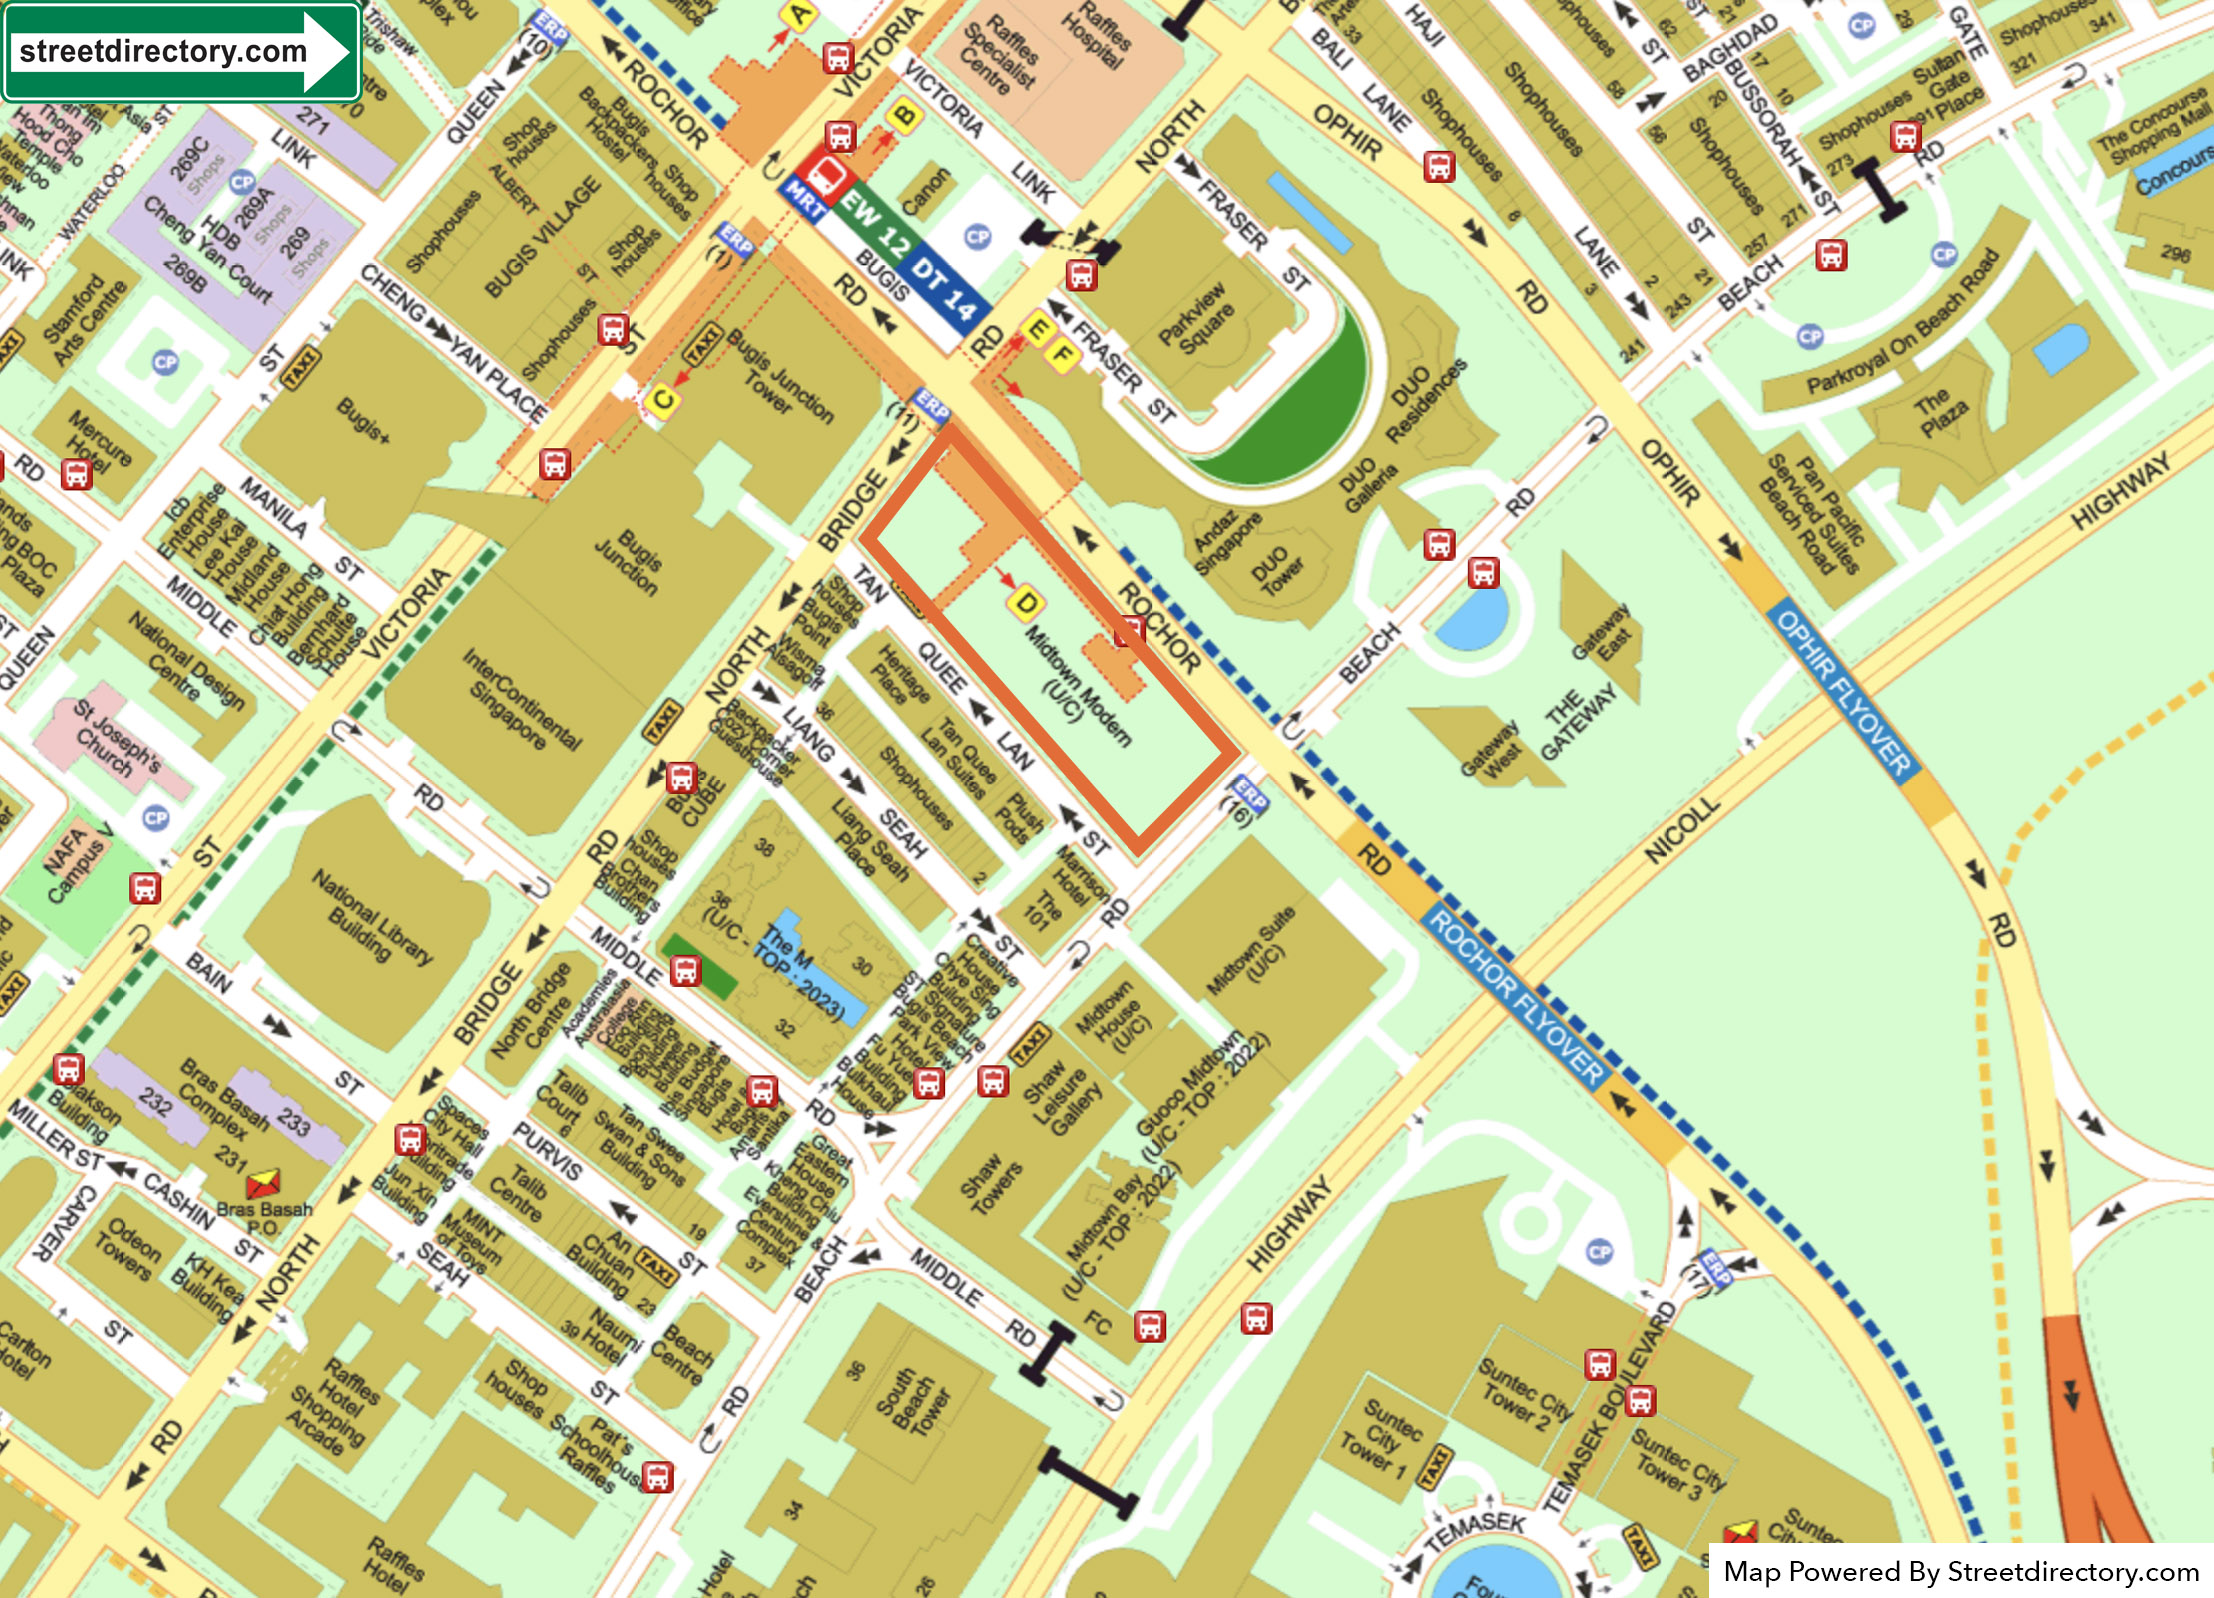 new-condo-singapore-midtown-modern-streetdirectory-location-map